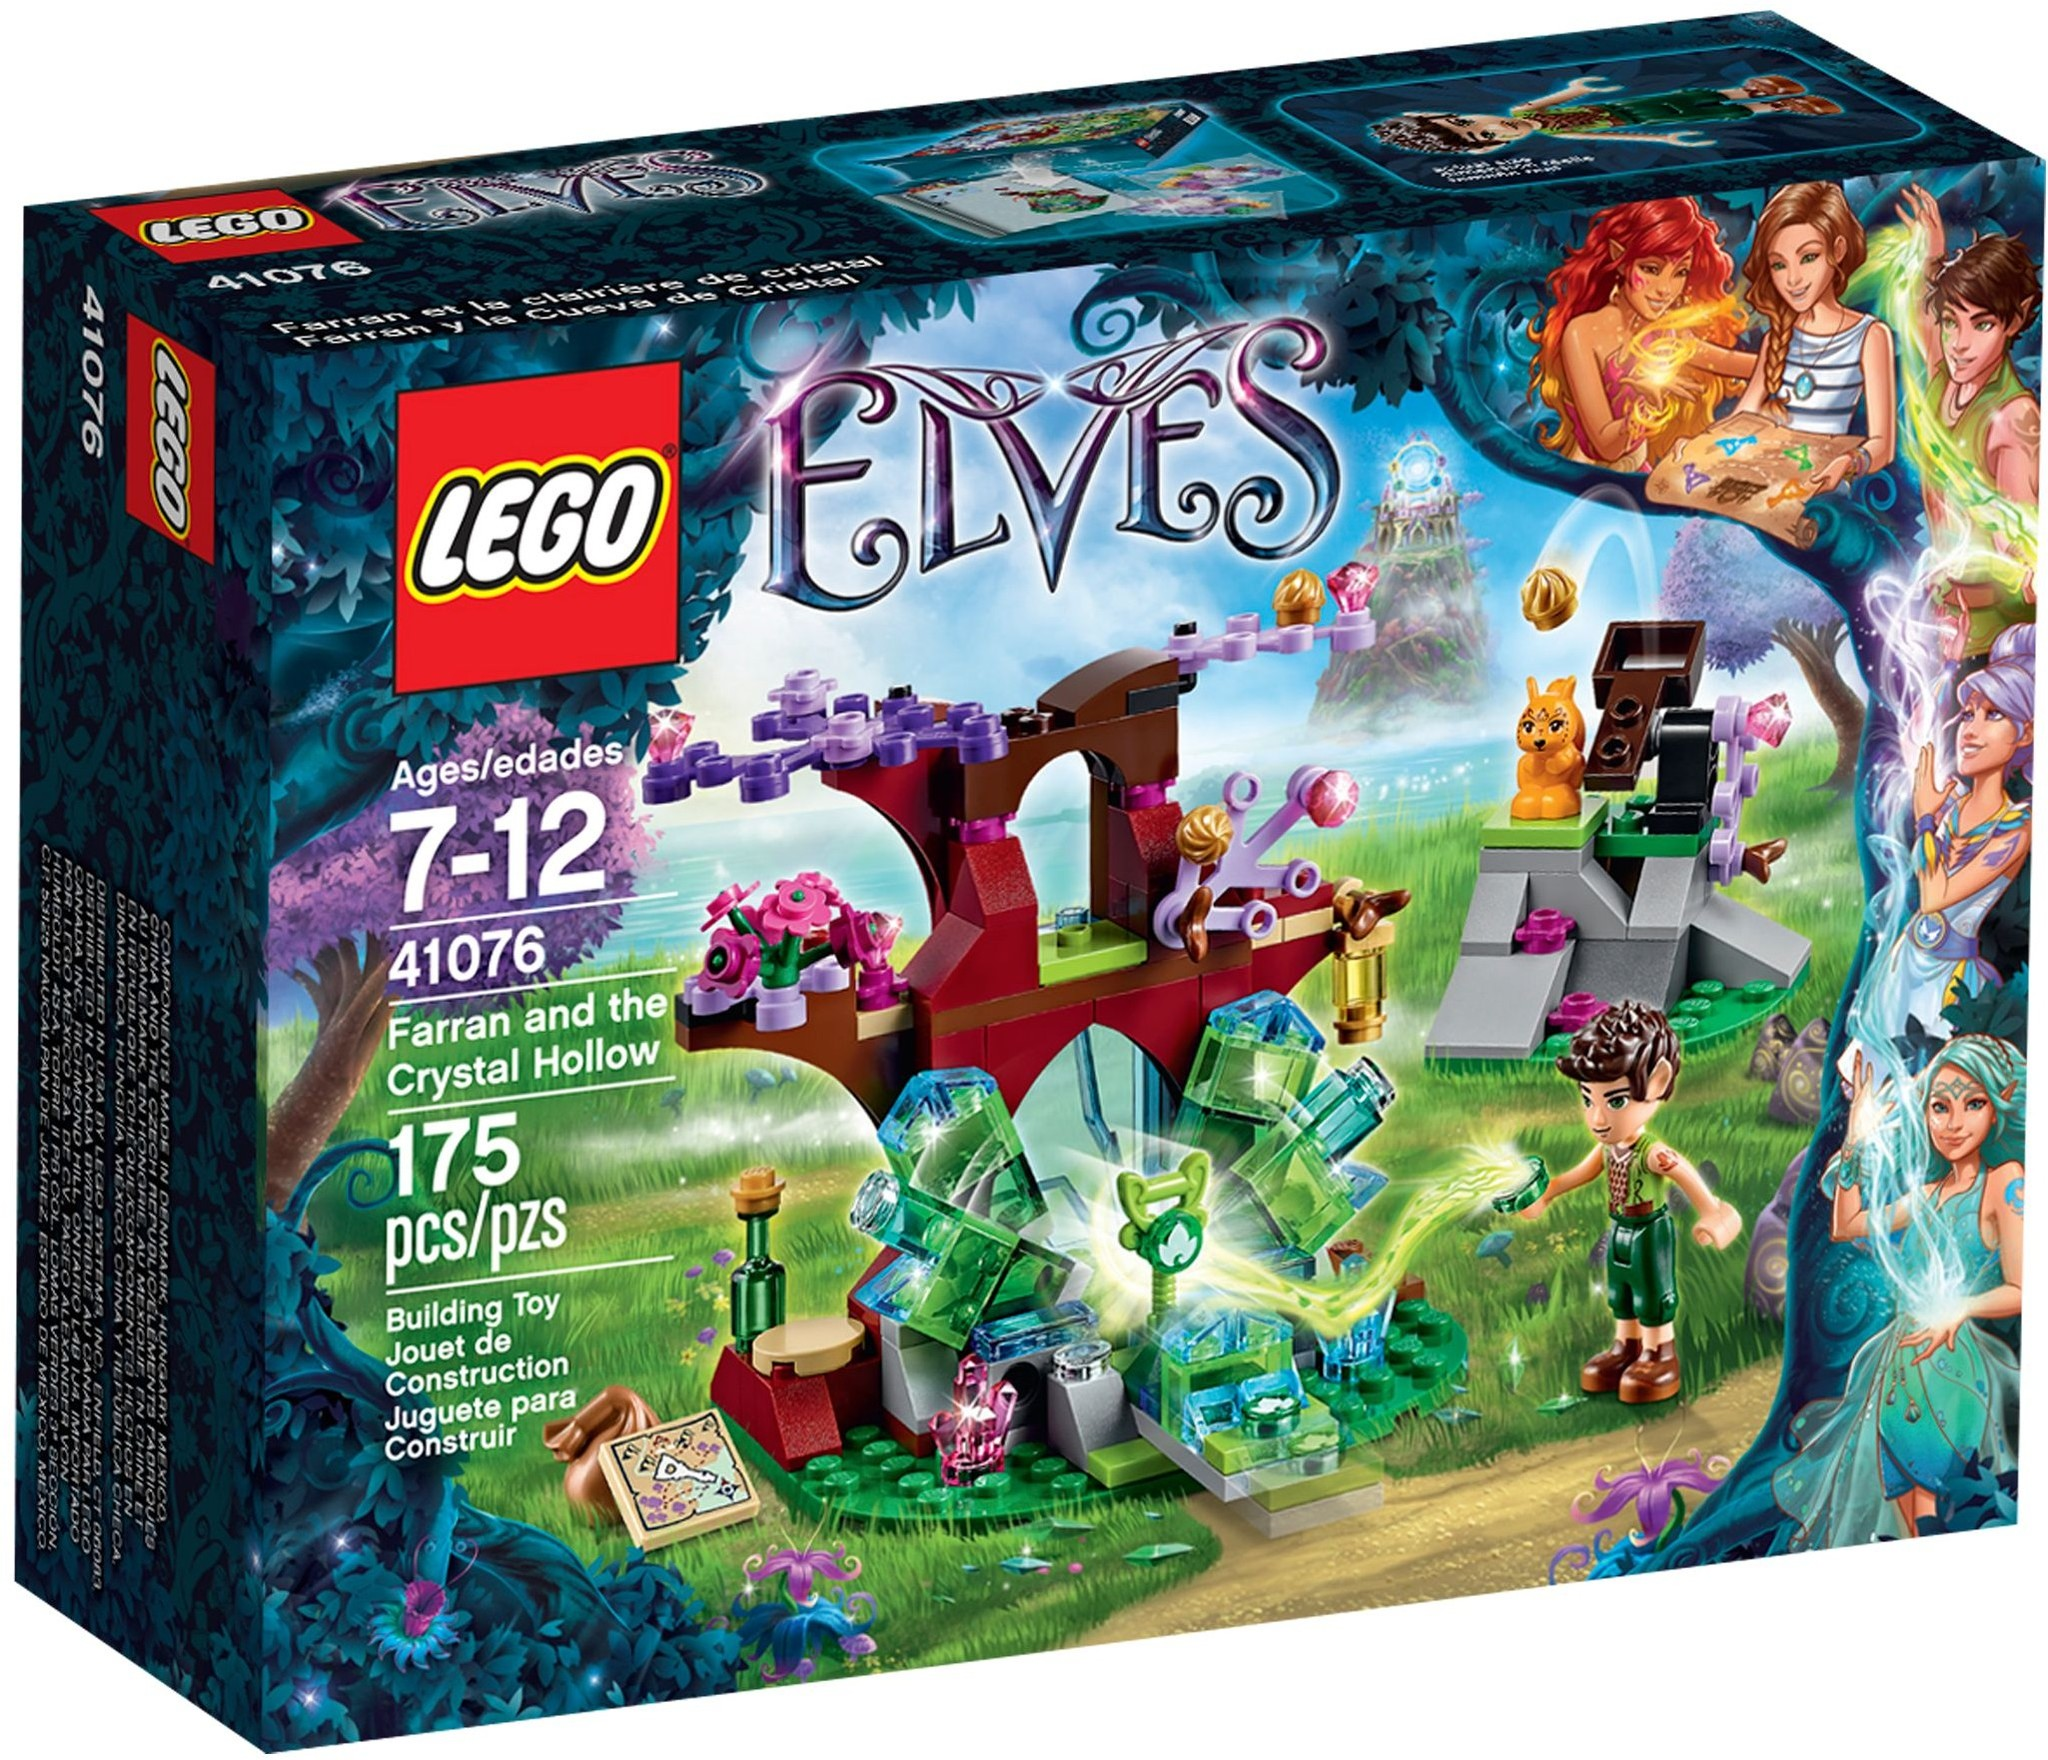 LEGO 41076 - Elves - Farran and the Crystal Hollow